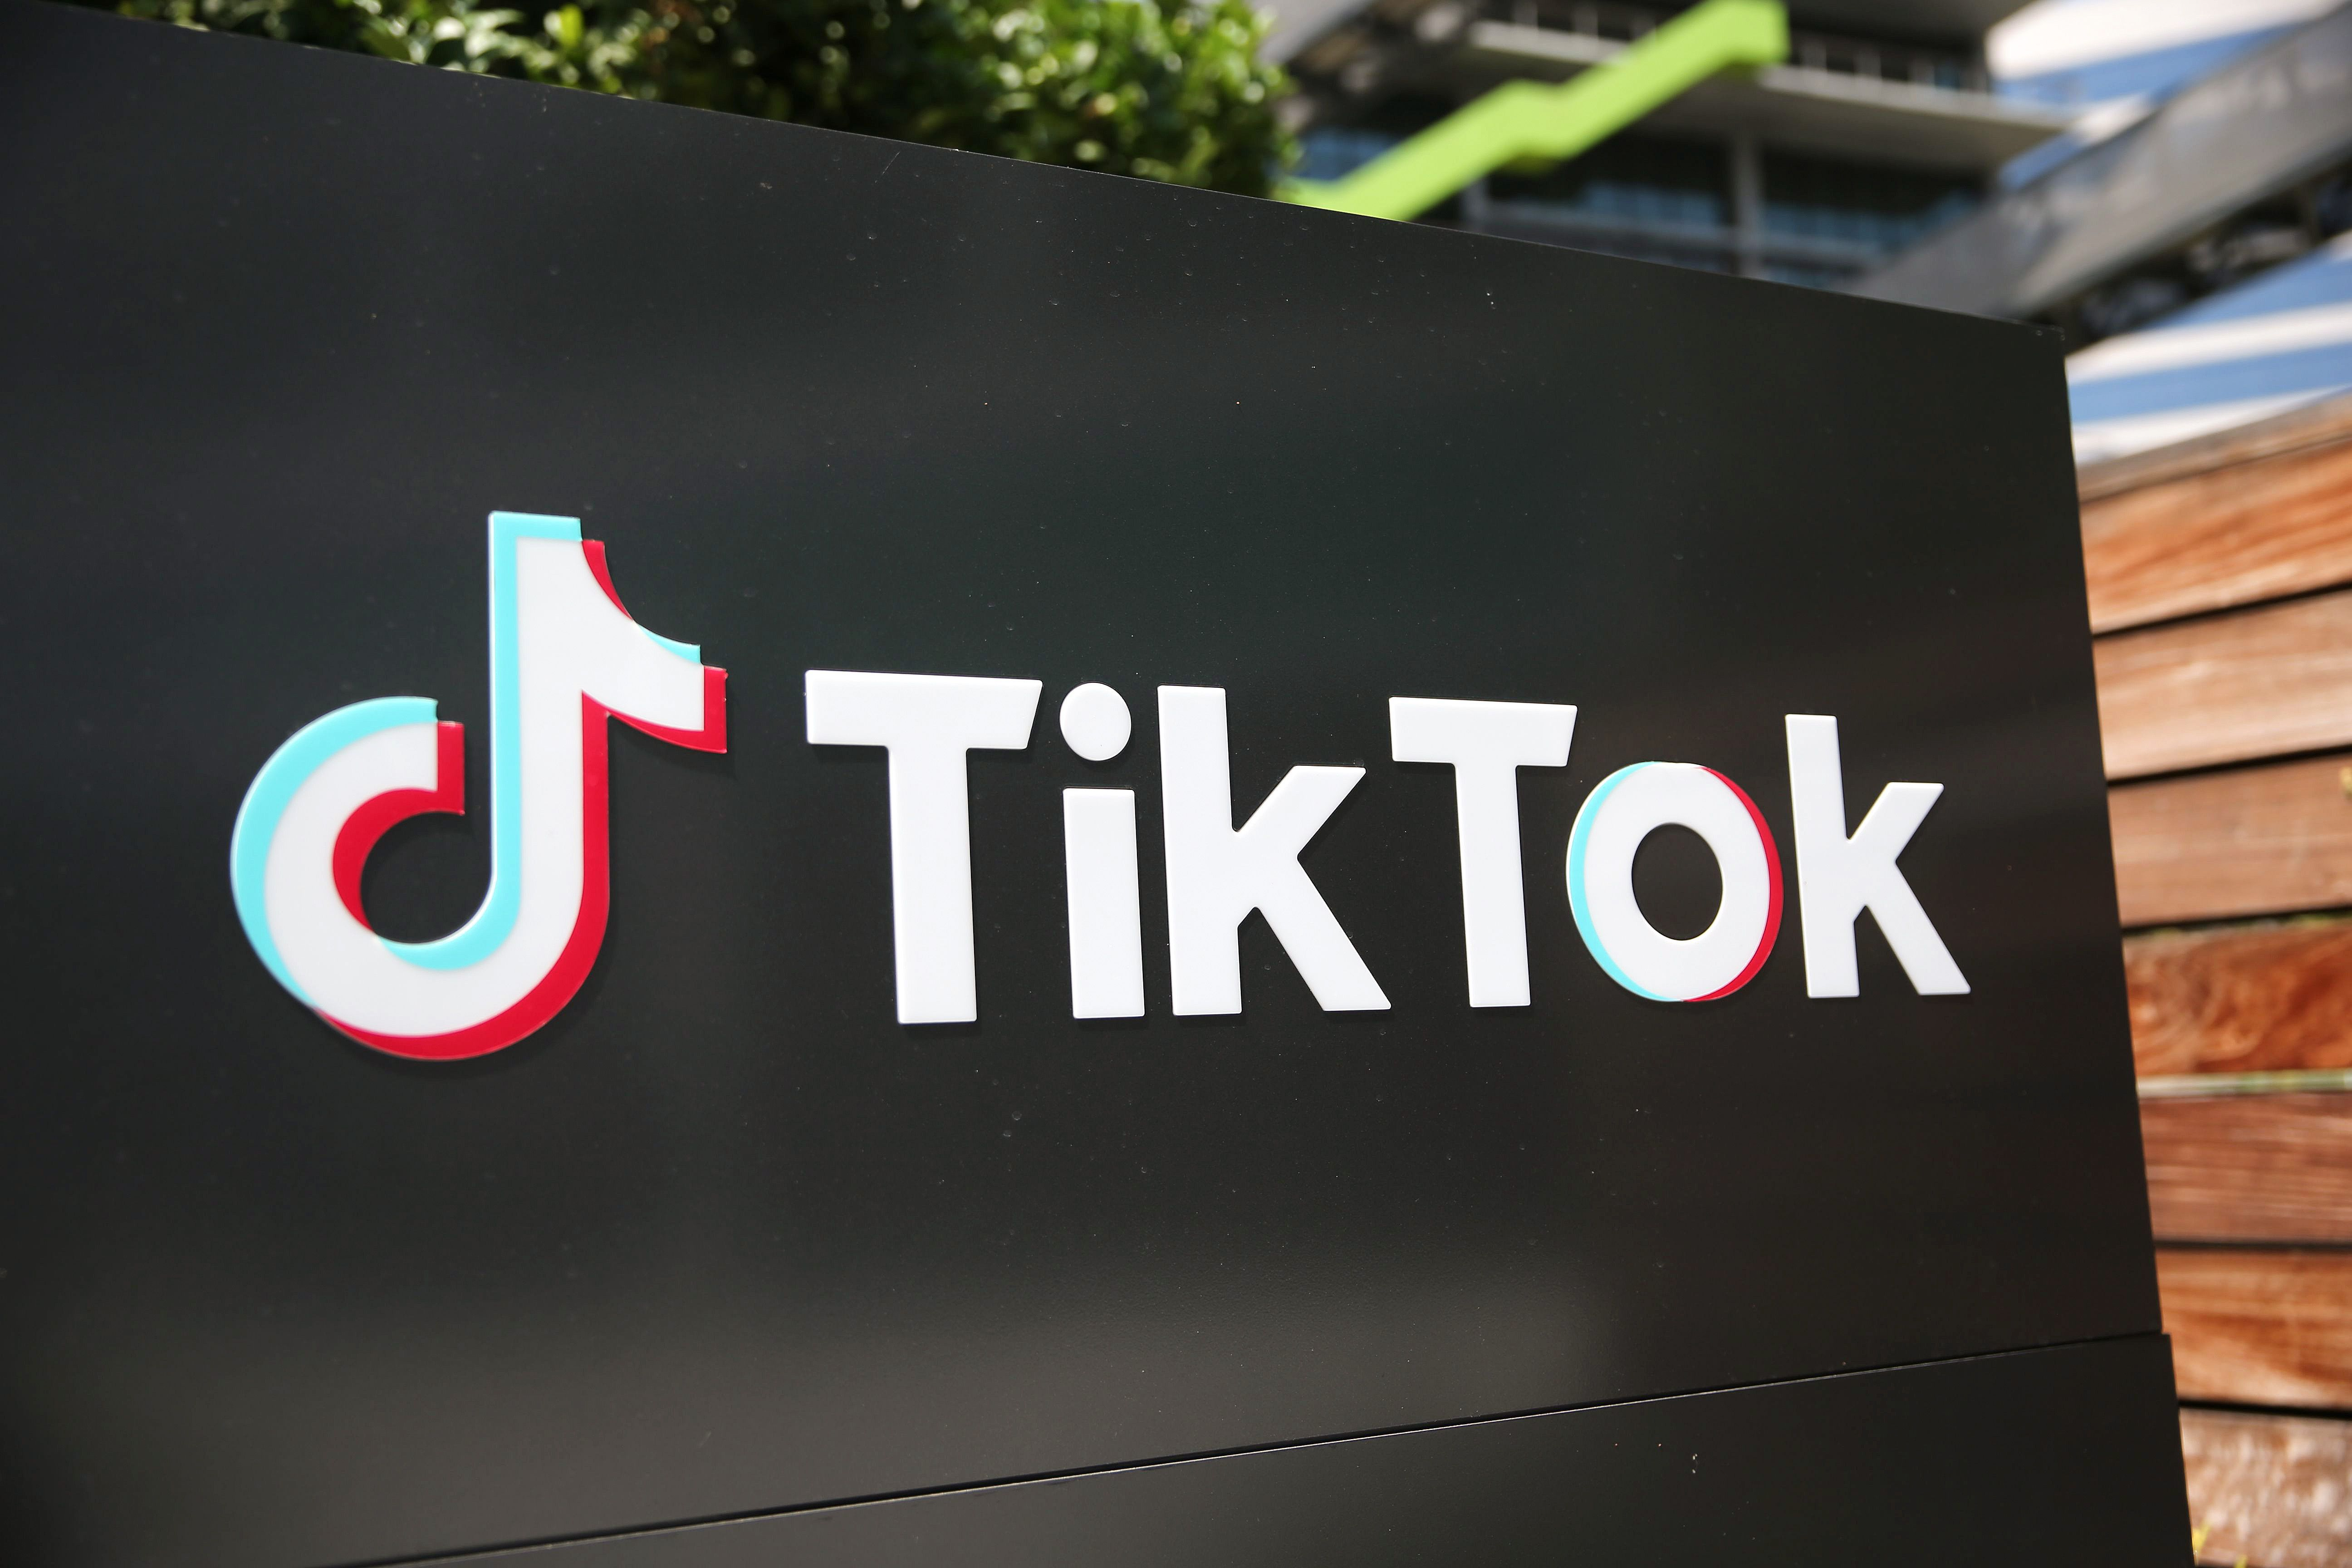 The owner of TikTok has chosen Oracle over Microsoft as its preferred suitor to buy the popular video-sharing app, according to a source familiar with the deal.